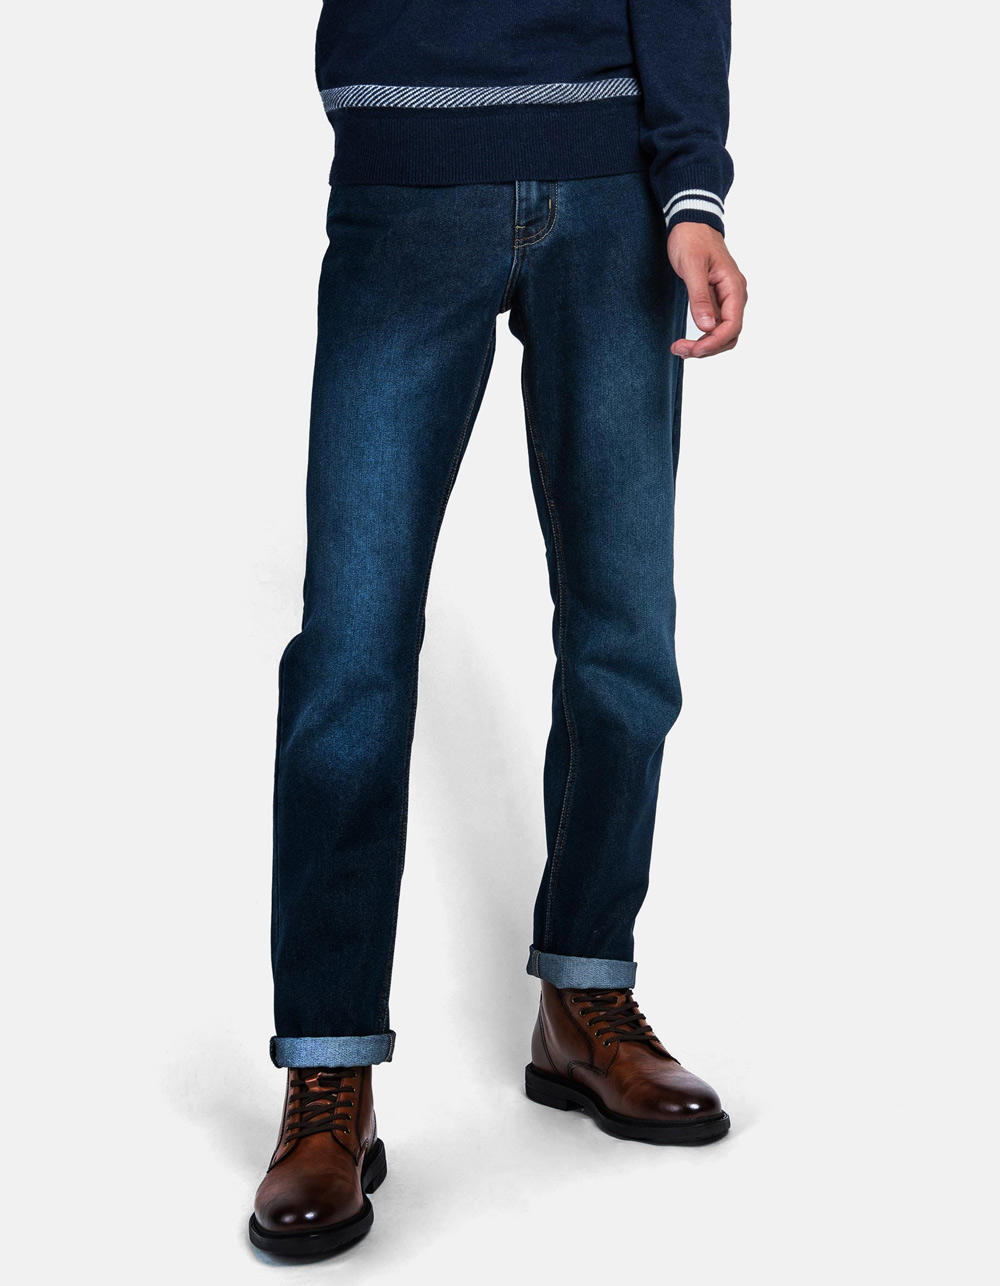 Basic Denim dark blue jeans